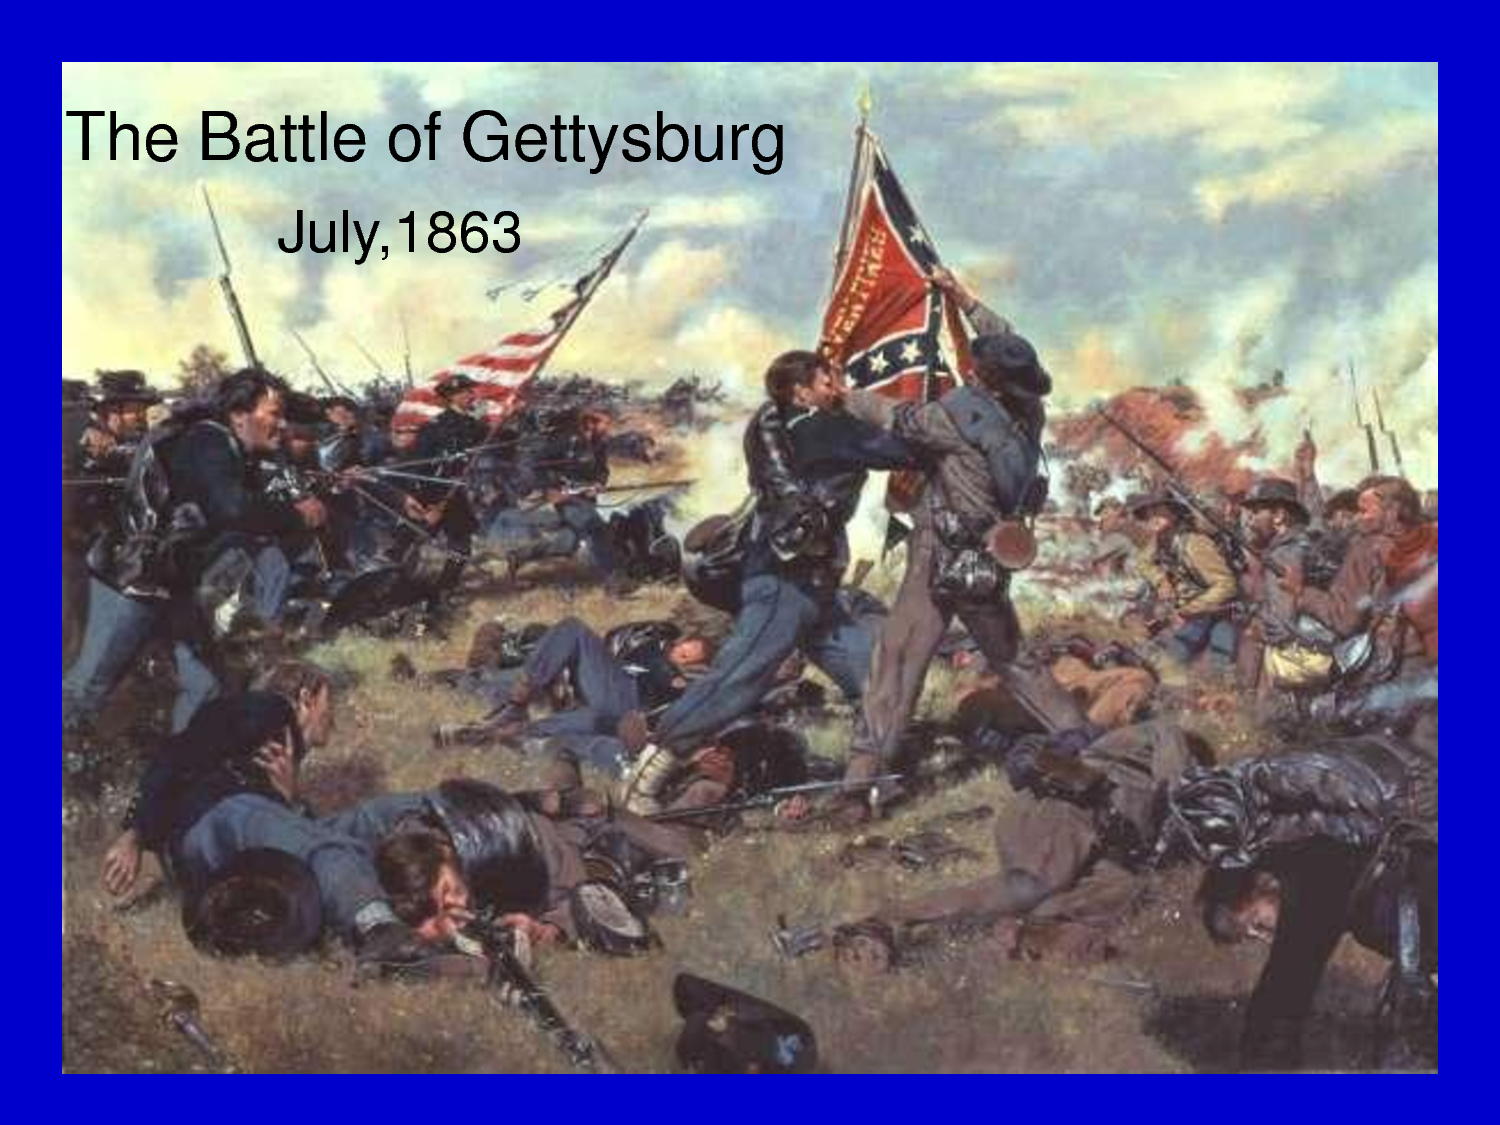 gettysburg was the turning point in the american civil war In the american civil war, gettysburg is perhaps the turning point of the war, and it is also the last invasion on north american soil gettysburg, at the time, was just a small-time town before and during the civil war any, yet forever changed after the battle.